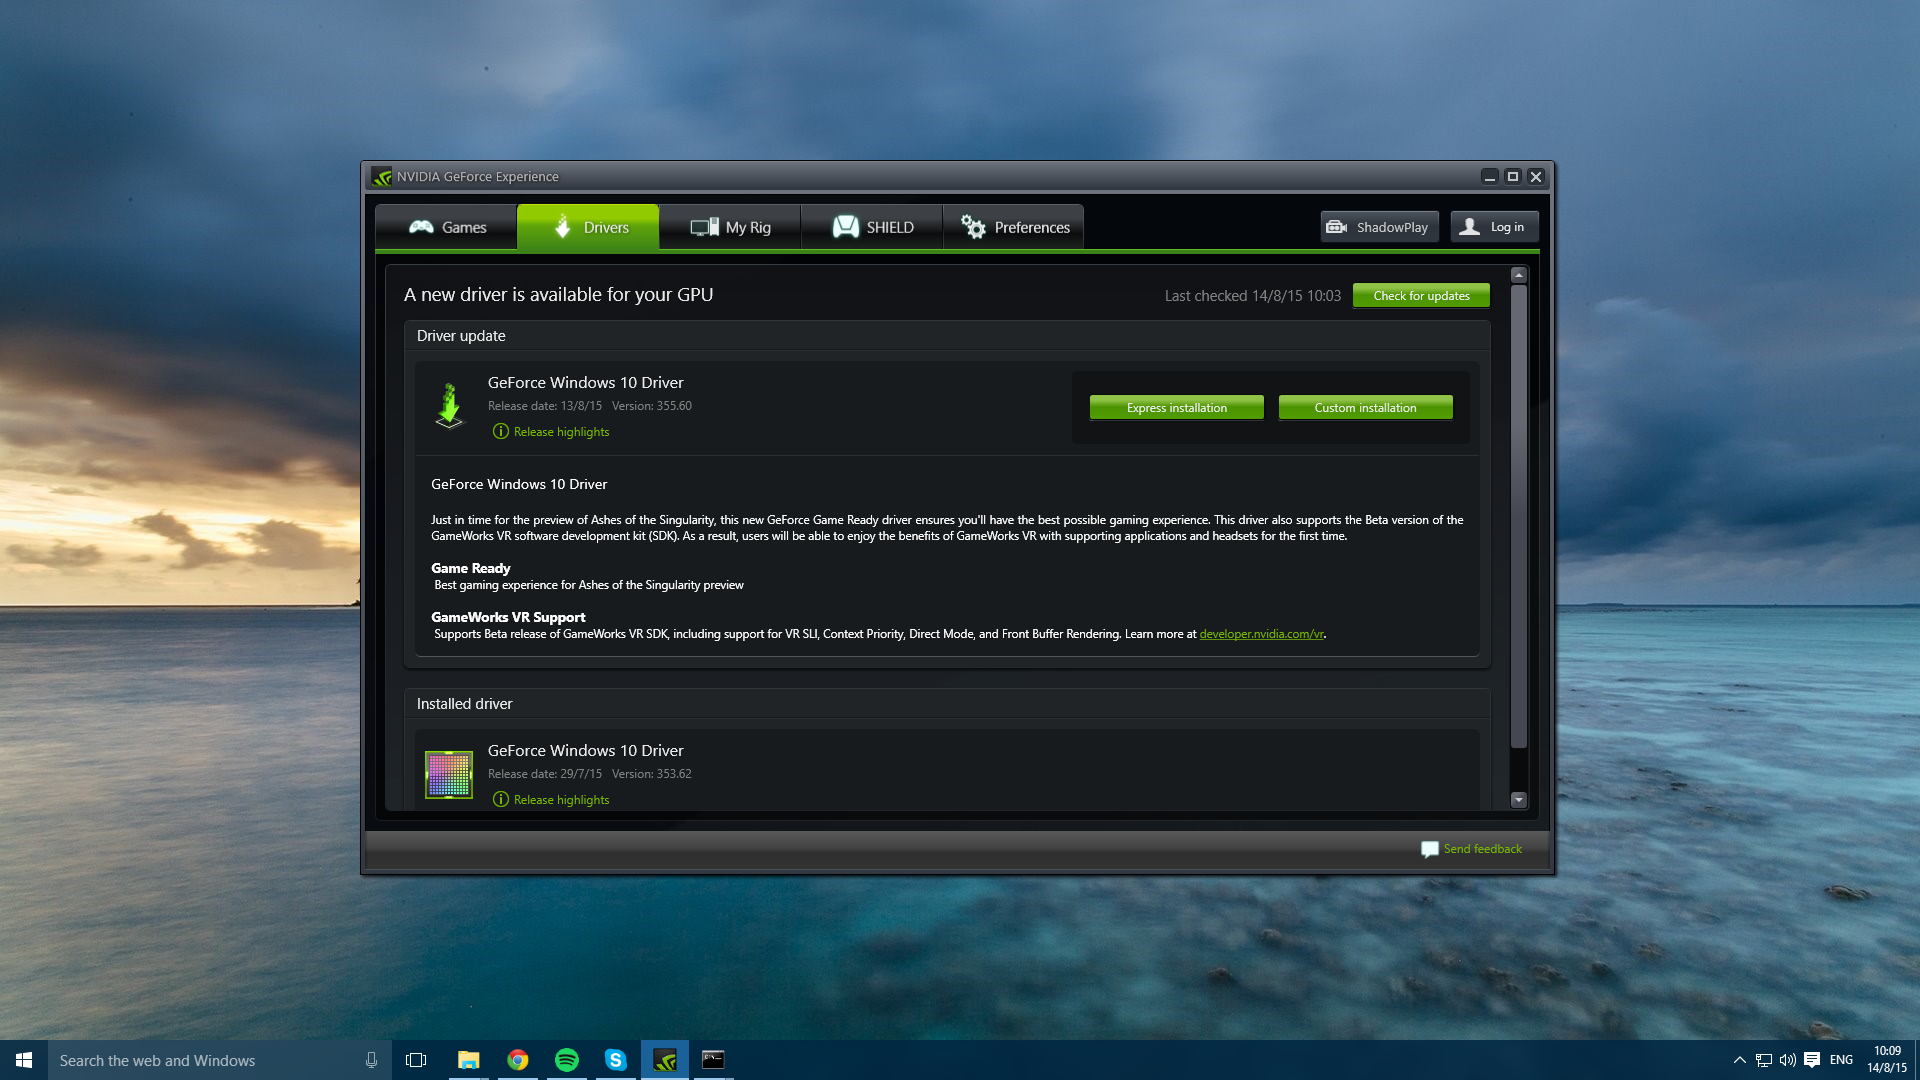 nvidia drivers update windows 10 64-bit